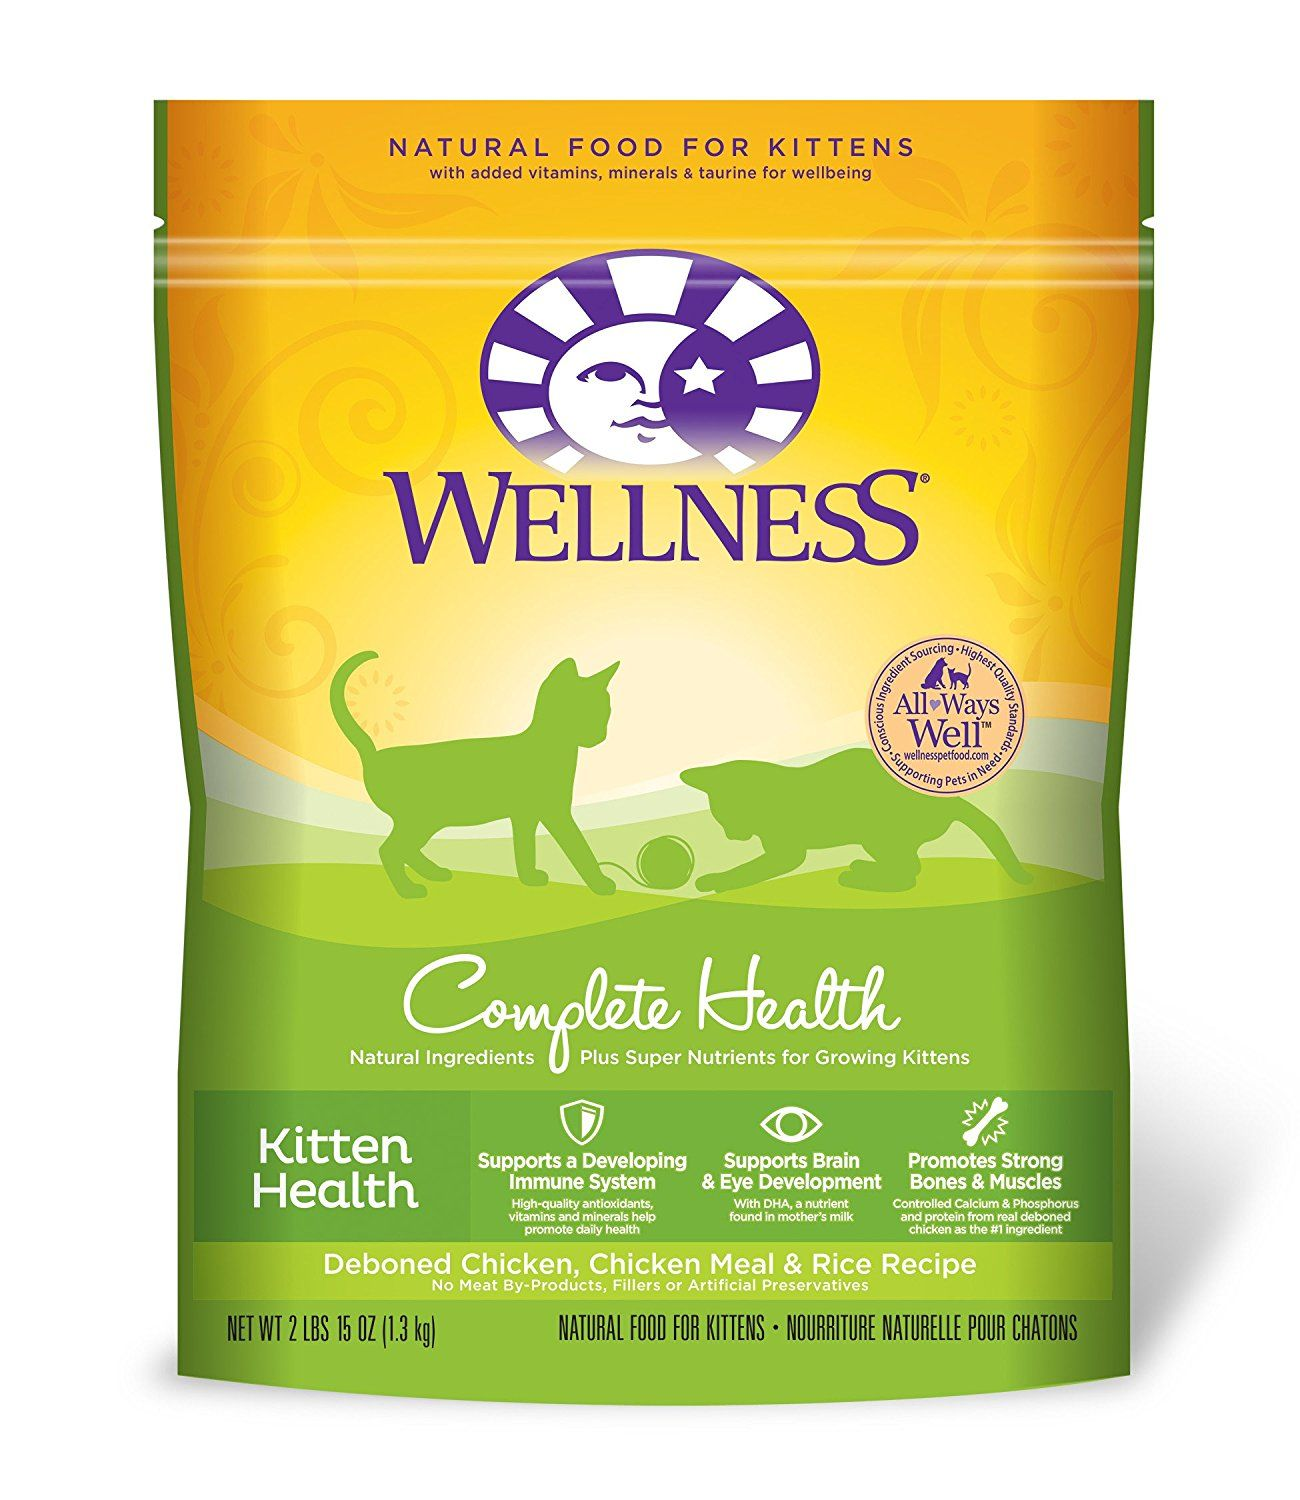 Wellness Complete Health Natural Dry Kitten Food Chicken And Rice 2 9 Pound Bag New And Awesome Cat Product Awa Kitten Health Kitten Food Natural Pet Food